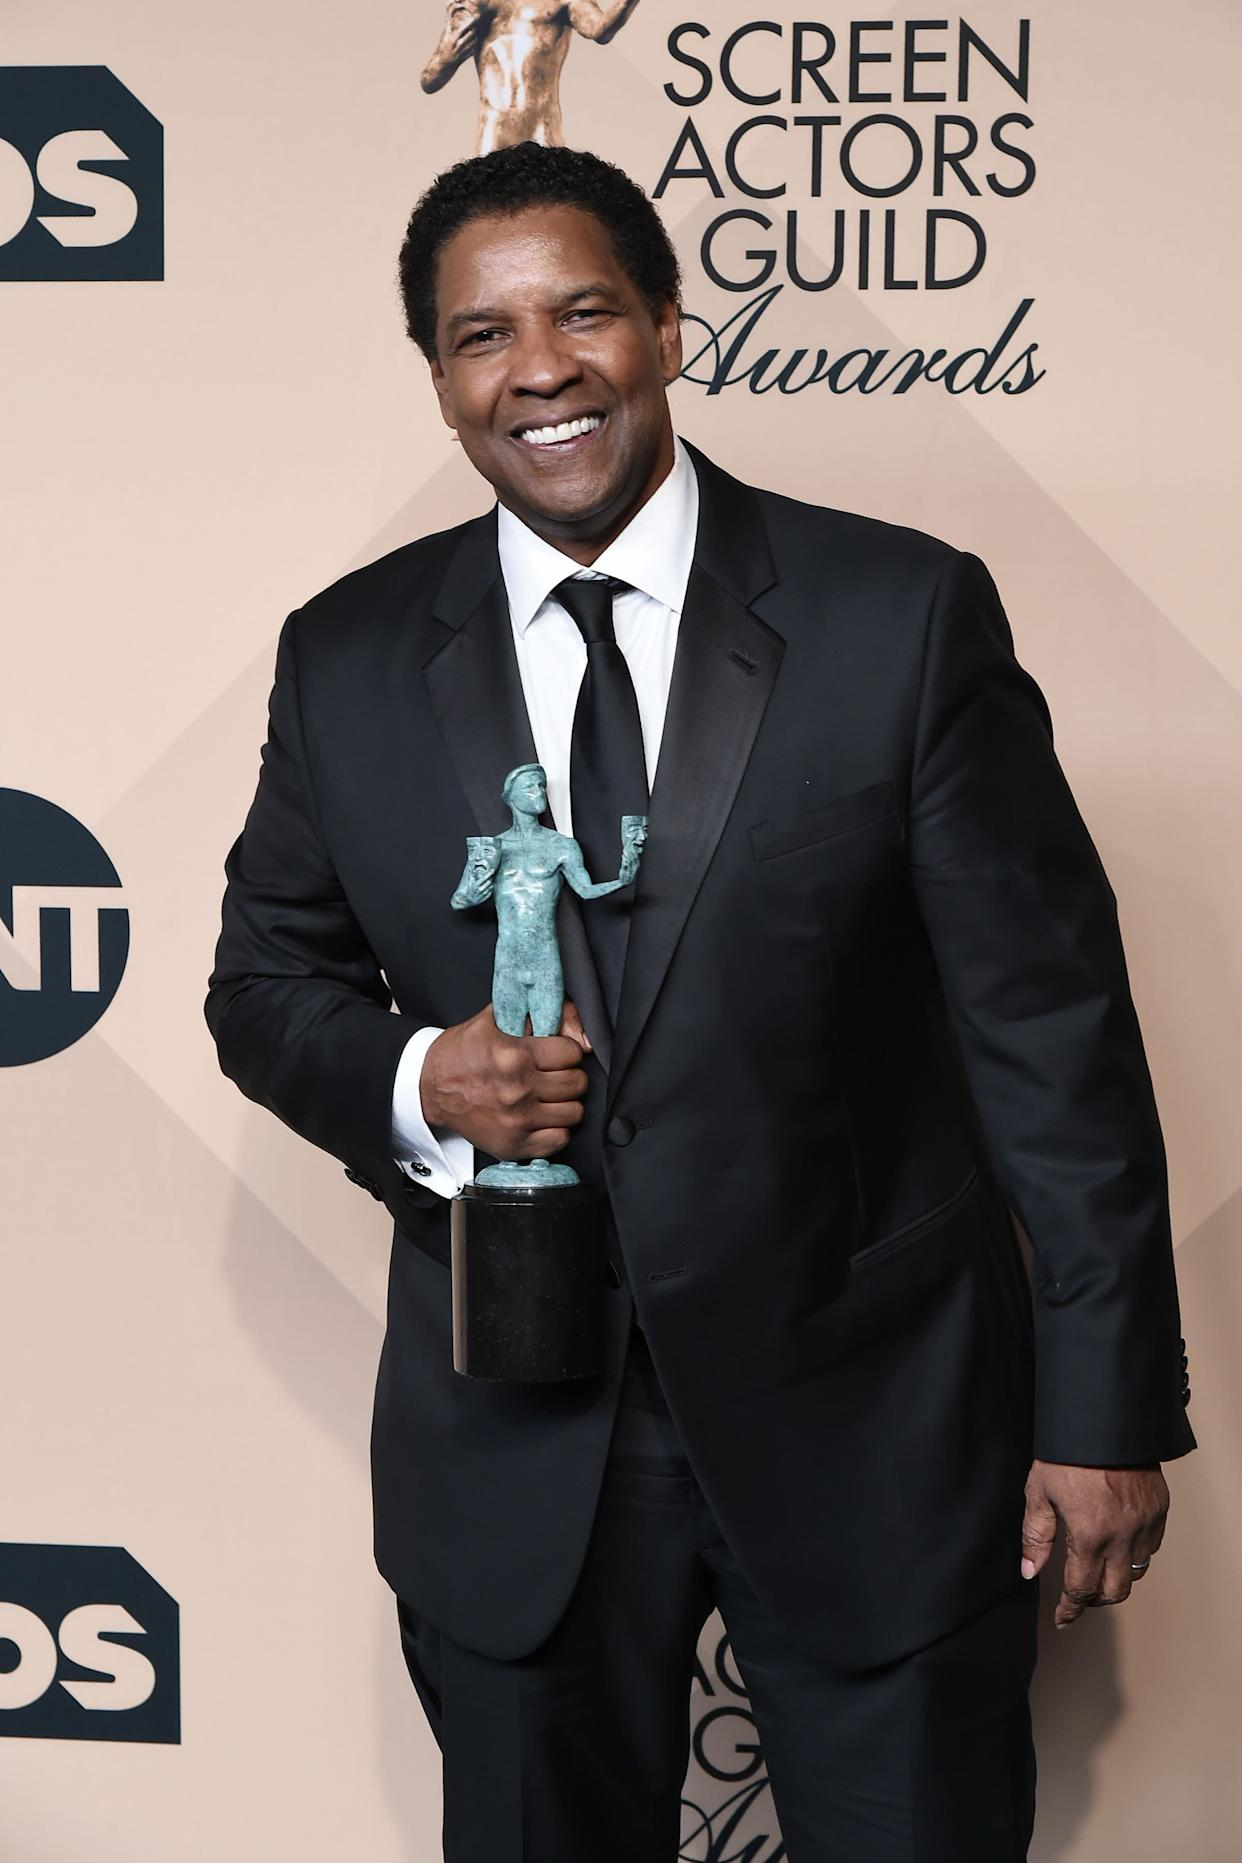 Denzel Washington is seen backstage at&amp;nbsp;the SAG Awards.<br><br>&amp;ldquo;I think we as Americans better learn to unite, We need to put our elected officials&amp;rsquo; feet to the fire and demand that they work together or they won&amp;rsquo;t get back into office.&quot;